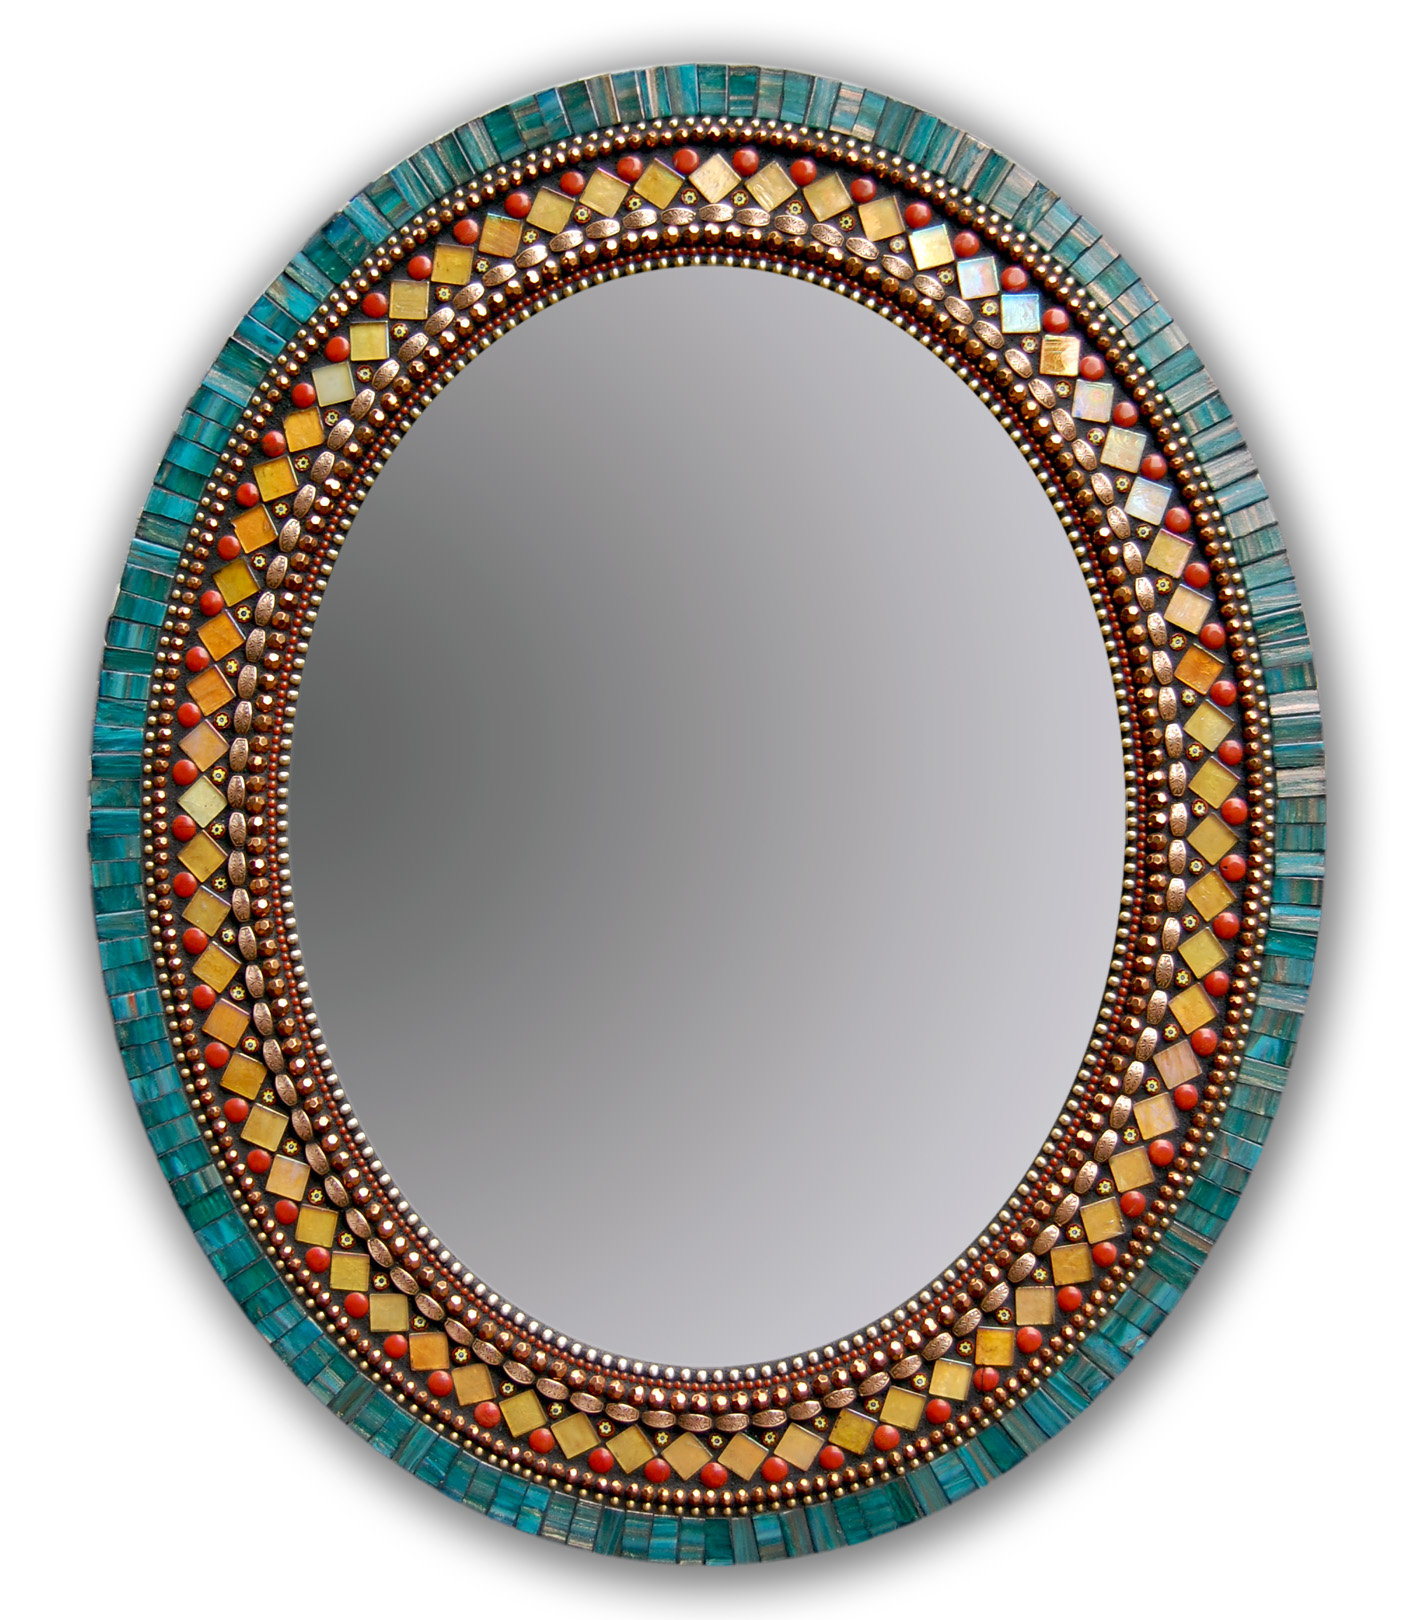 Butterfly mirror by angie heinrich mosaic mirror for Mosaic mirror